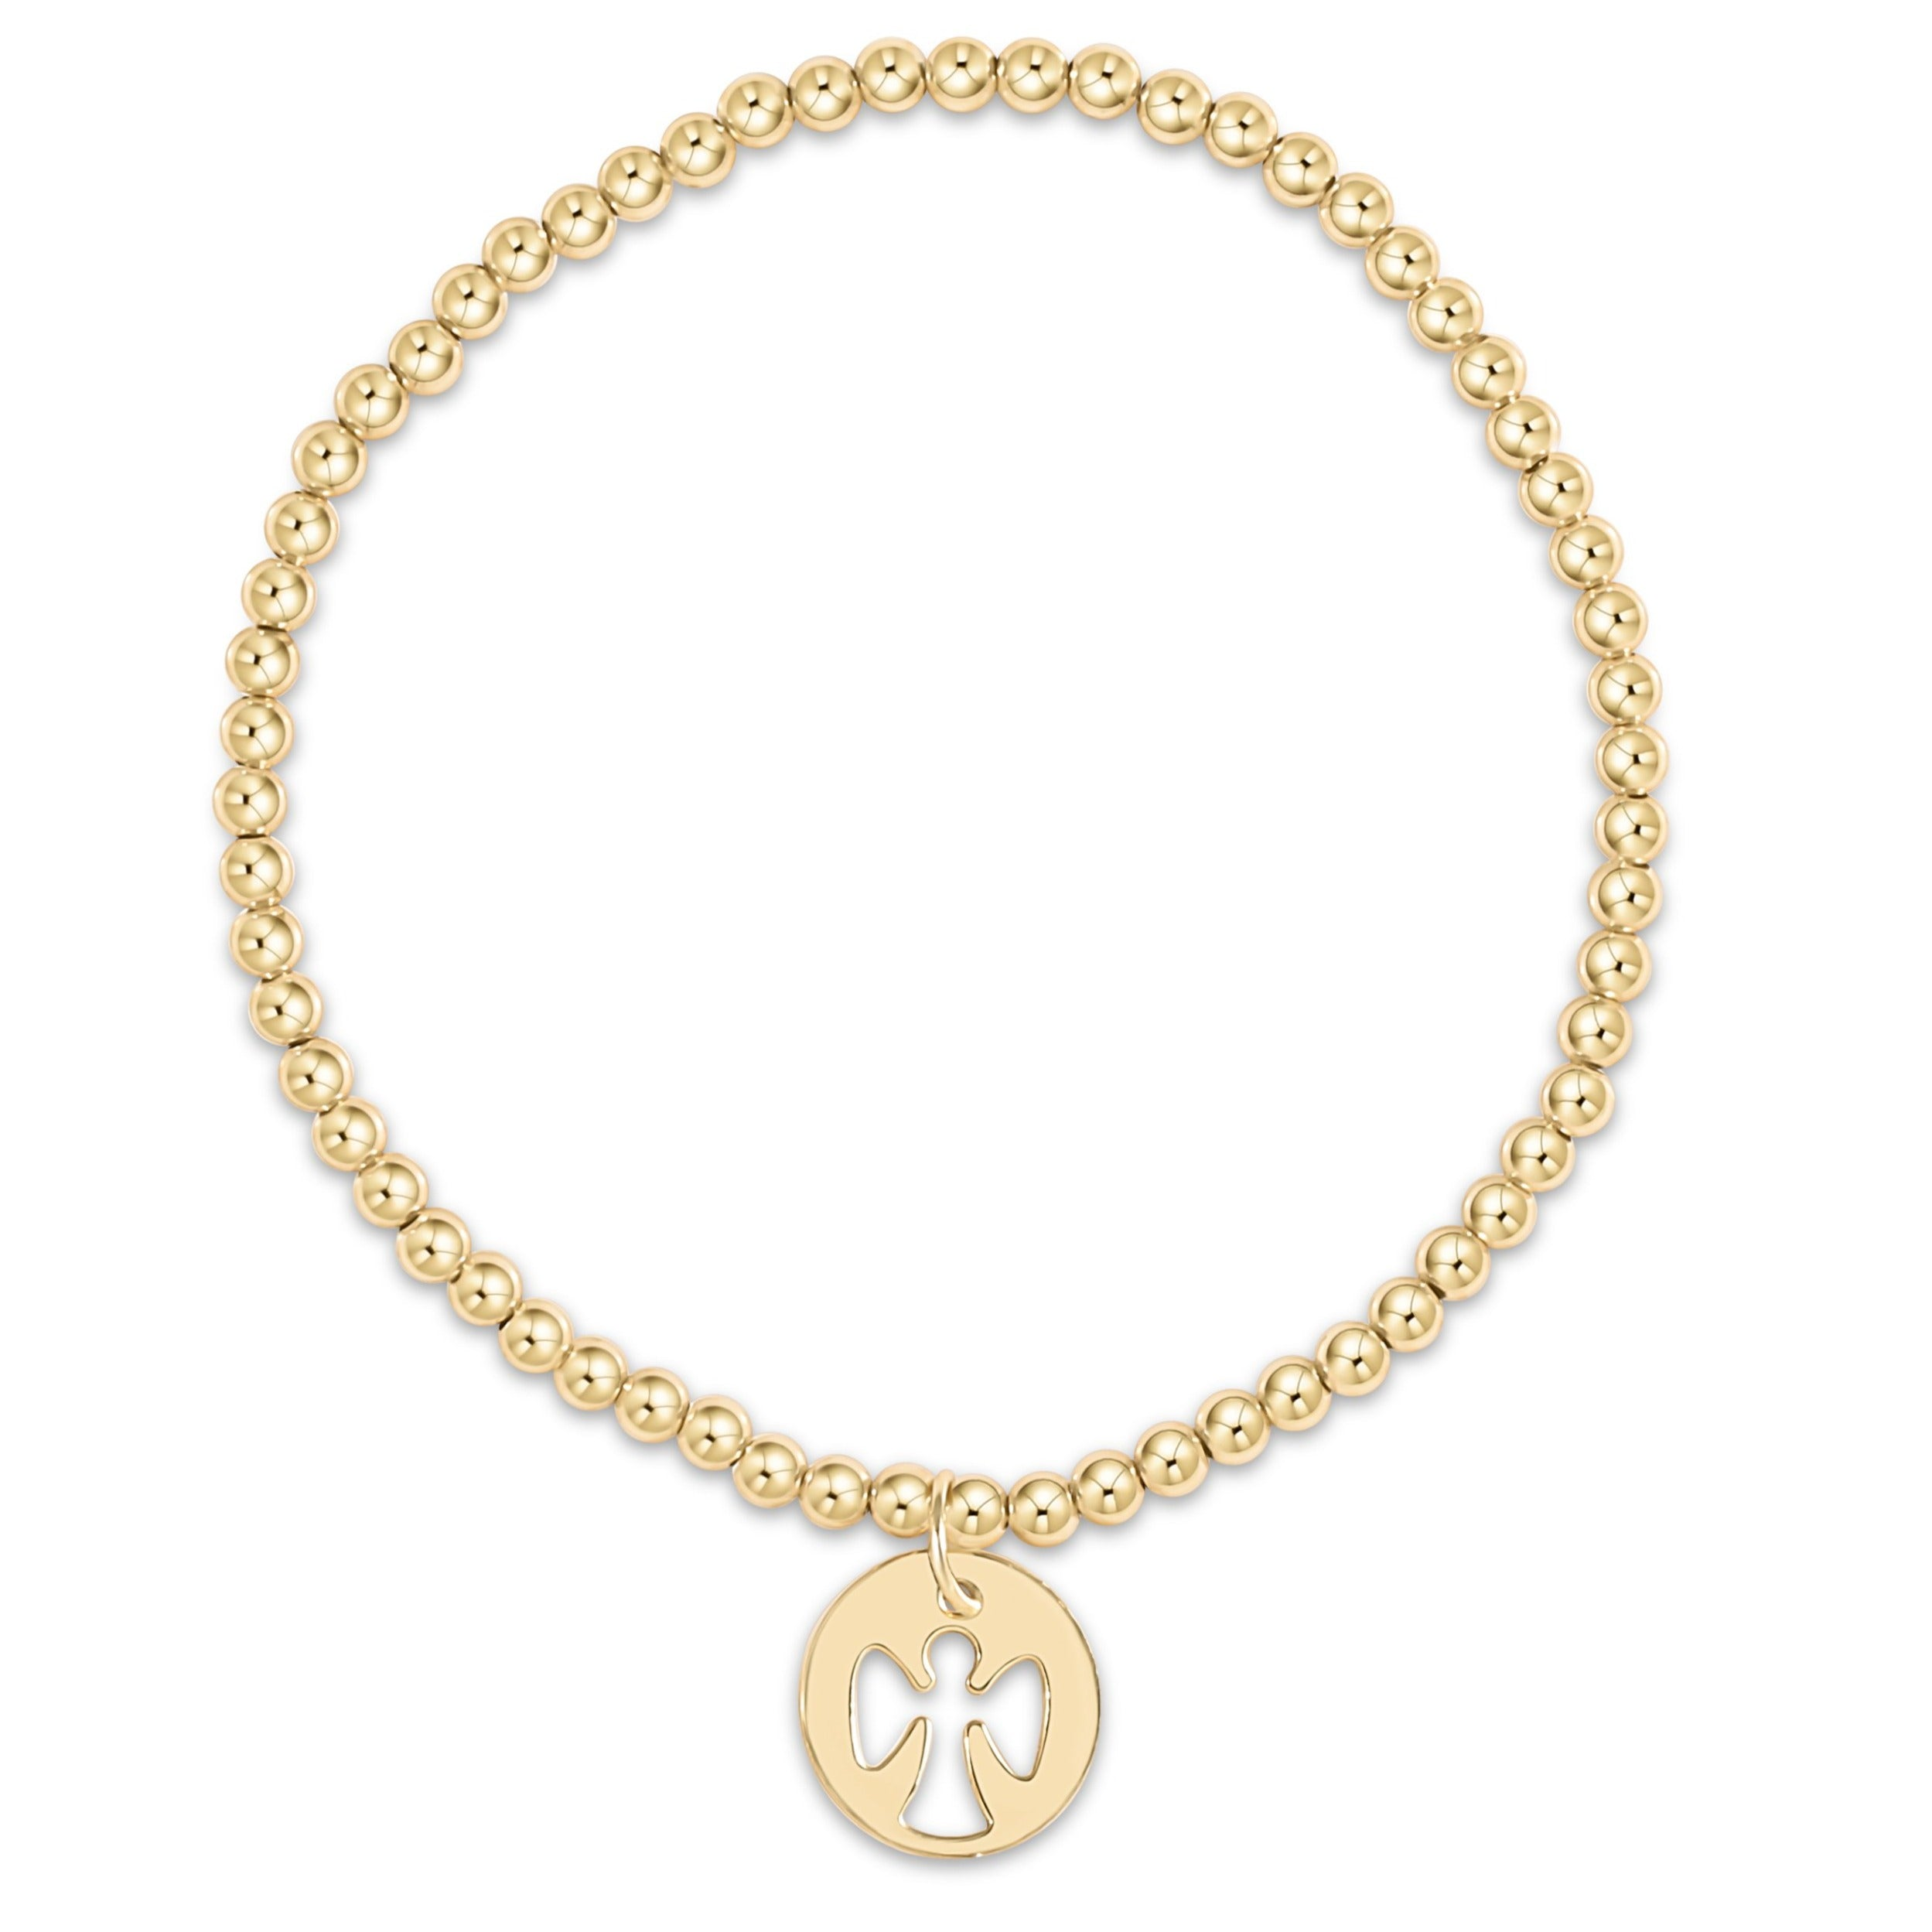 classic gold 3mm bead bracelet - guardian angel charm